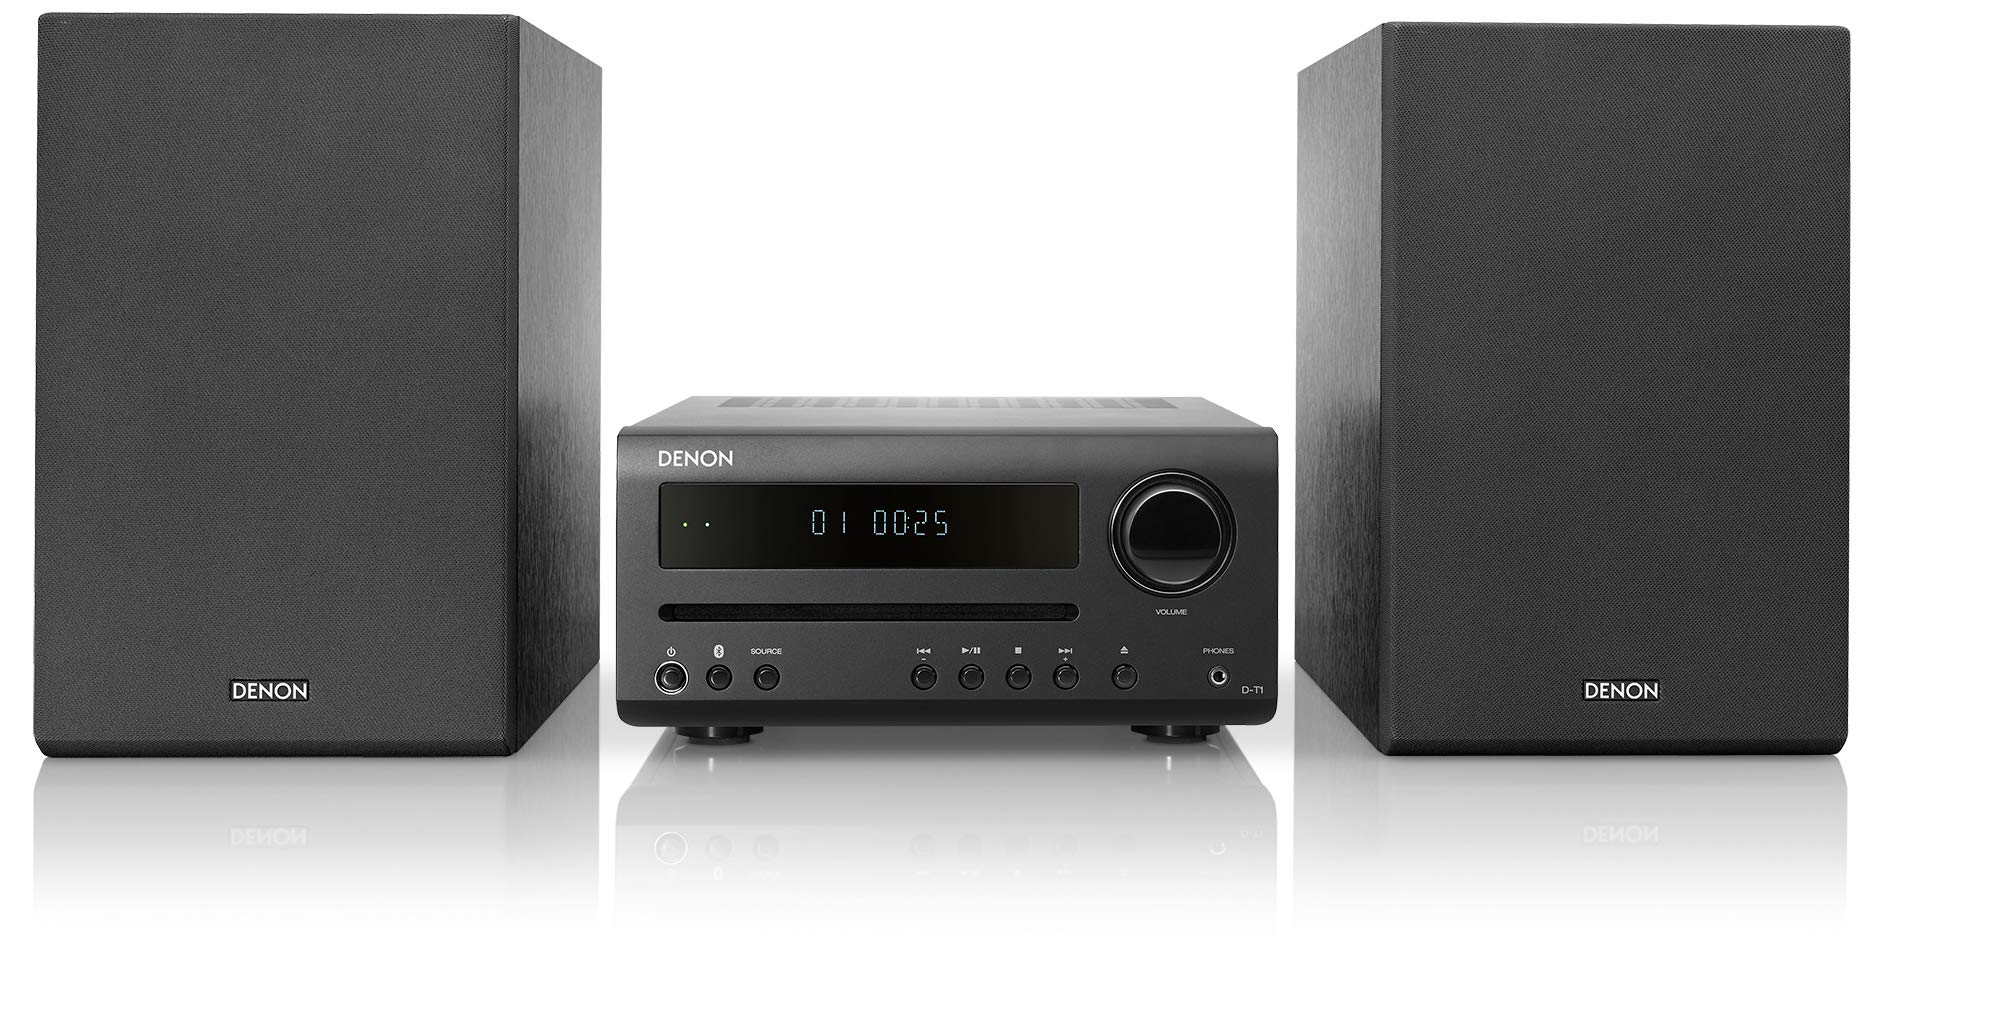 Denon D-T1 Home Theater Mini Amplifier and Bookshelf Speaker Pair - Compact HiFi Stereo System with CD, FM/AM Tuner and Wireless Bluetooth Music   Perfect for Small Rooms and Home Cinema